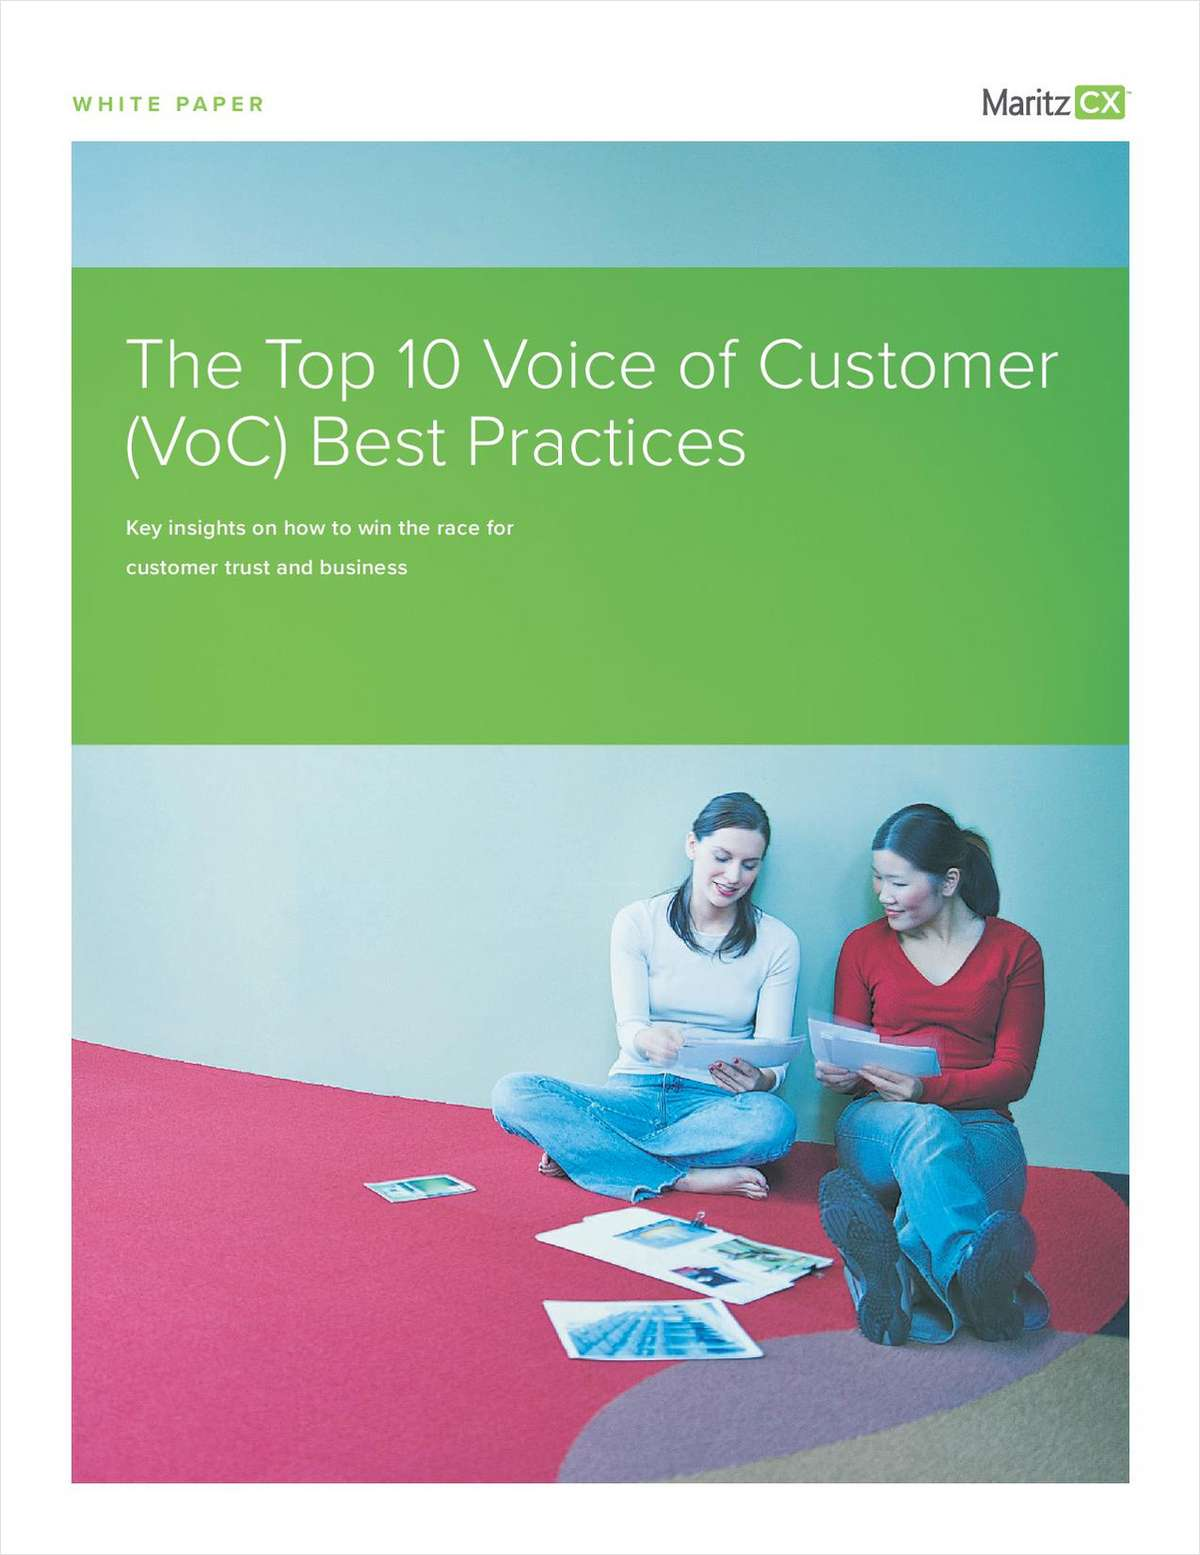 The Top 10 Voice of Customer (VoC) Best Practices